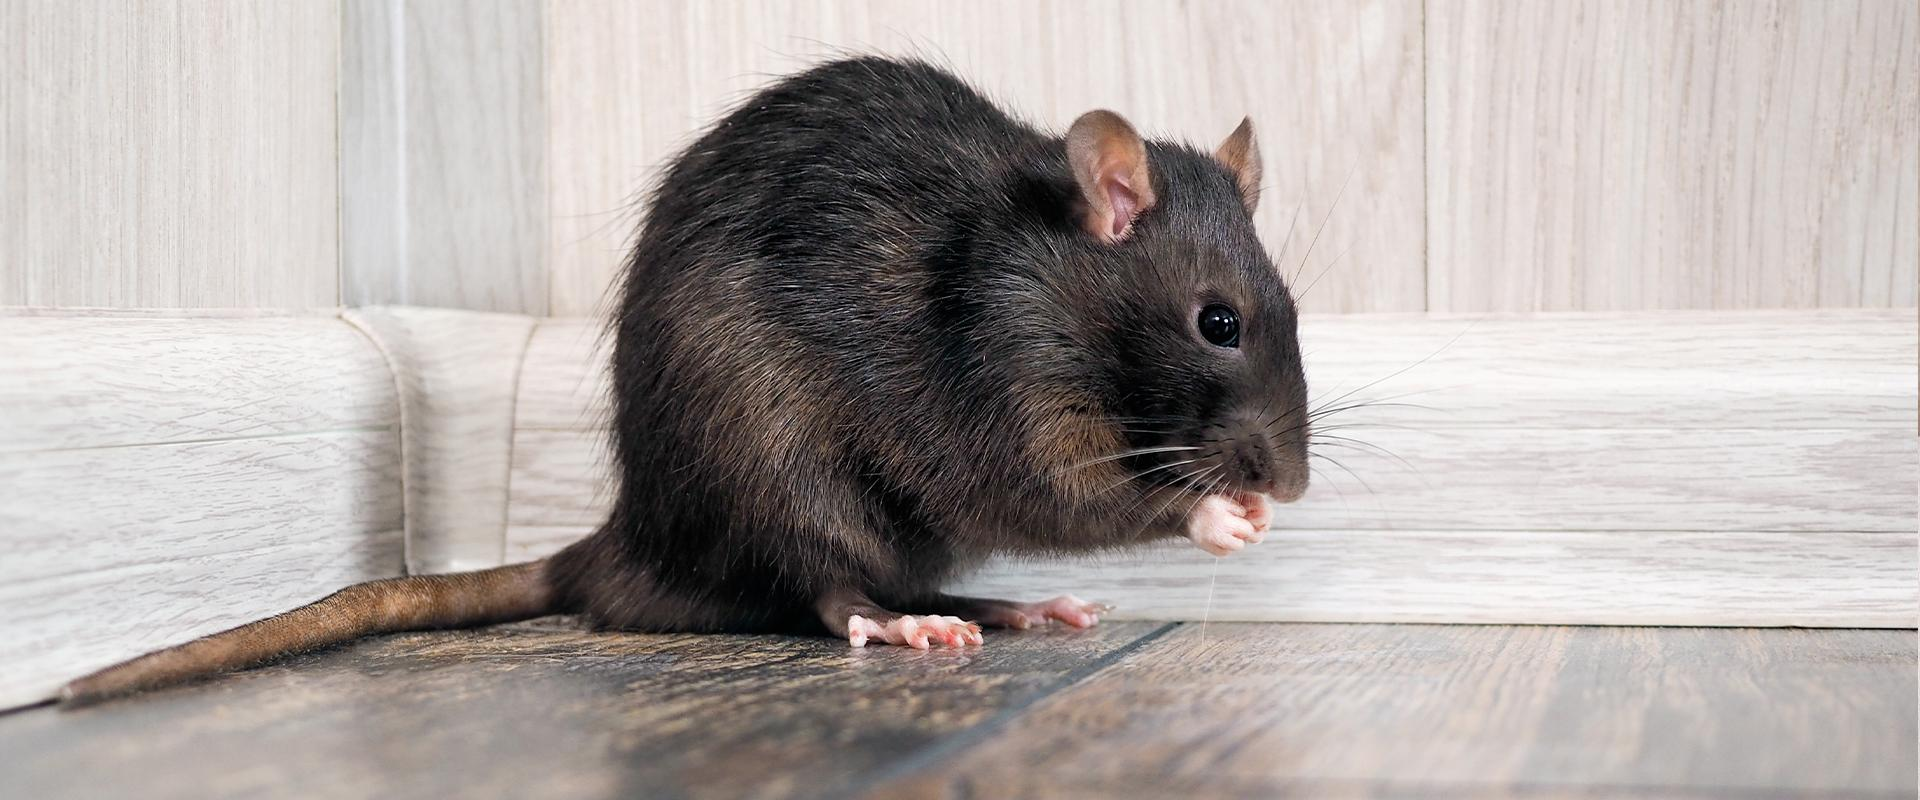 a rat on the floor of a home